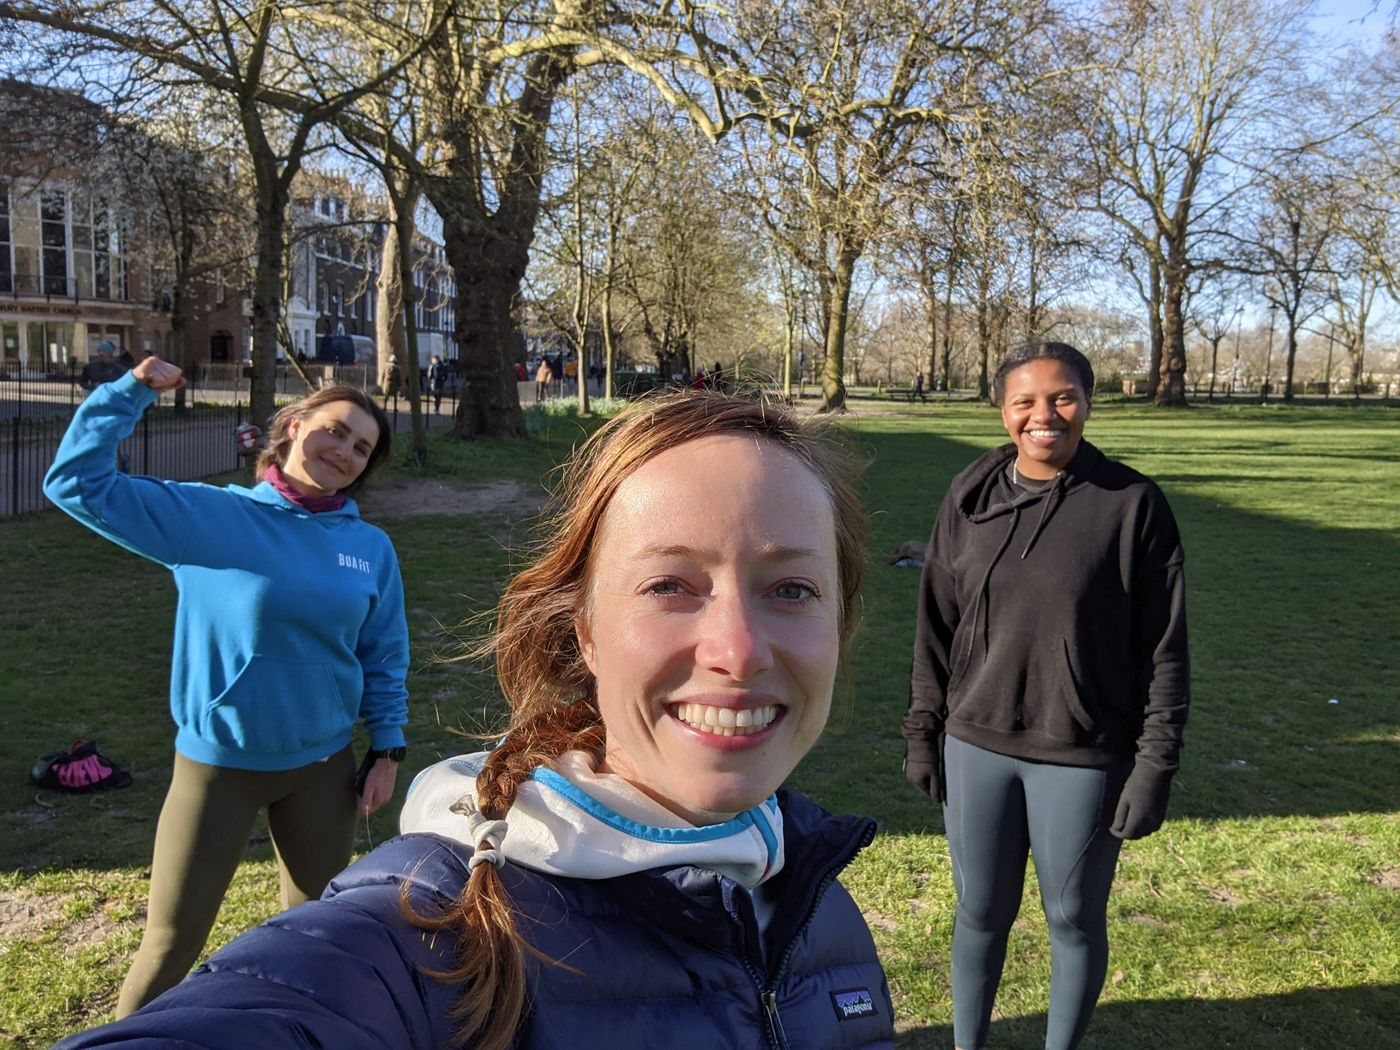 It always feels better after booty 🍑 boot camp!   Great morning sesh with the Highbury Fields Crew! 🥳   HAPPY TUESDAY TO ALL!